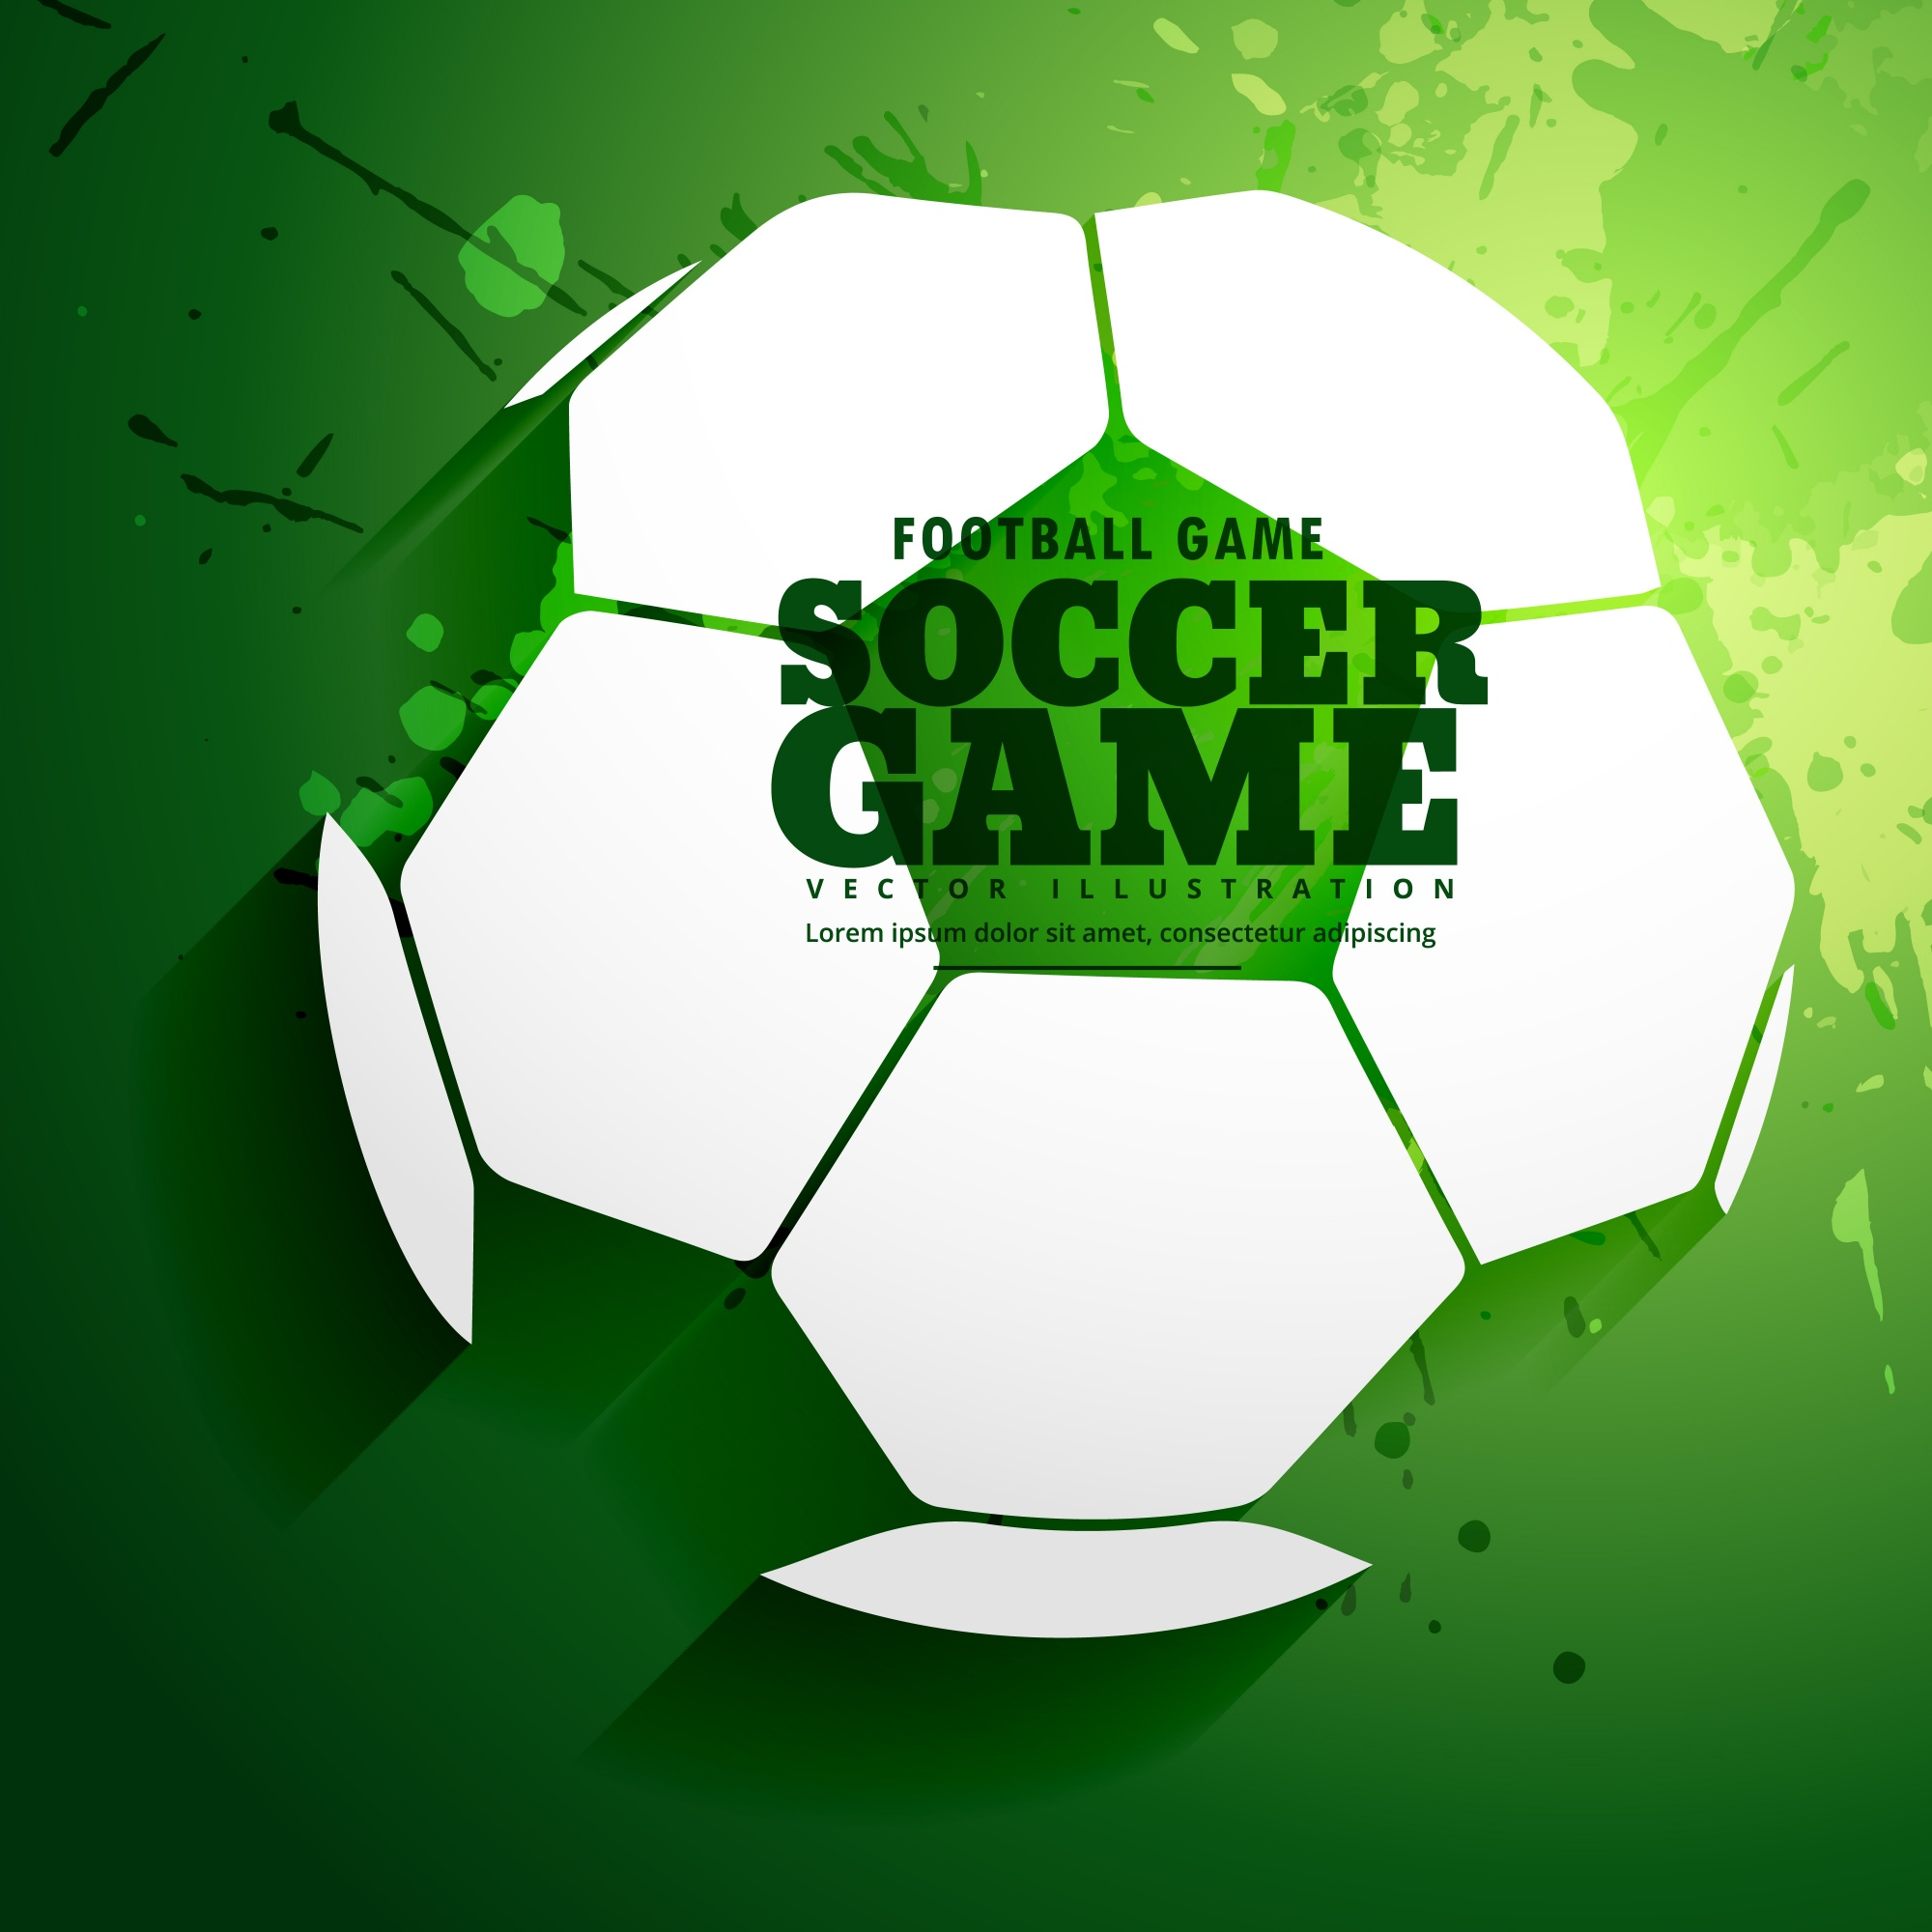 Green background with a soccer ball